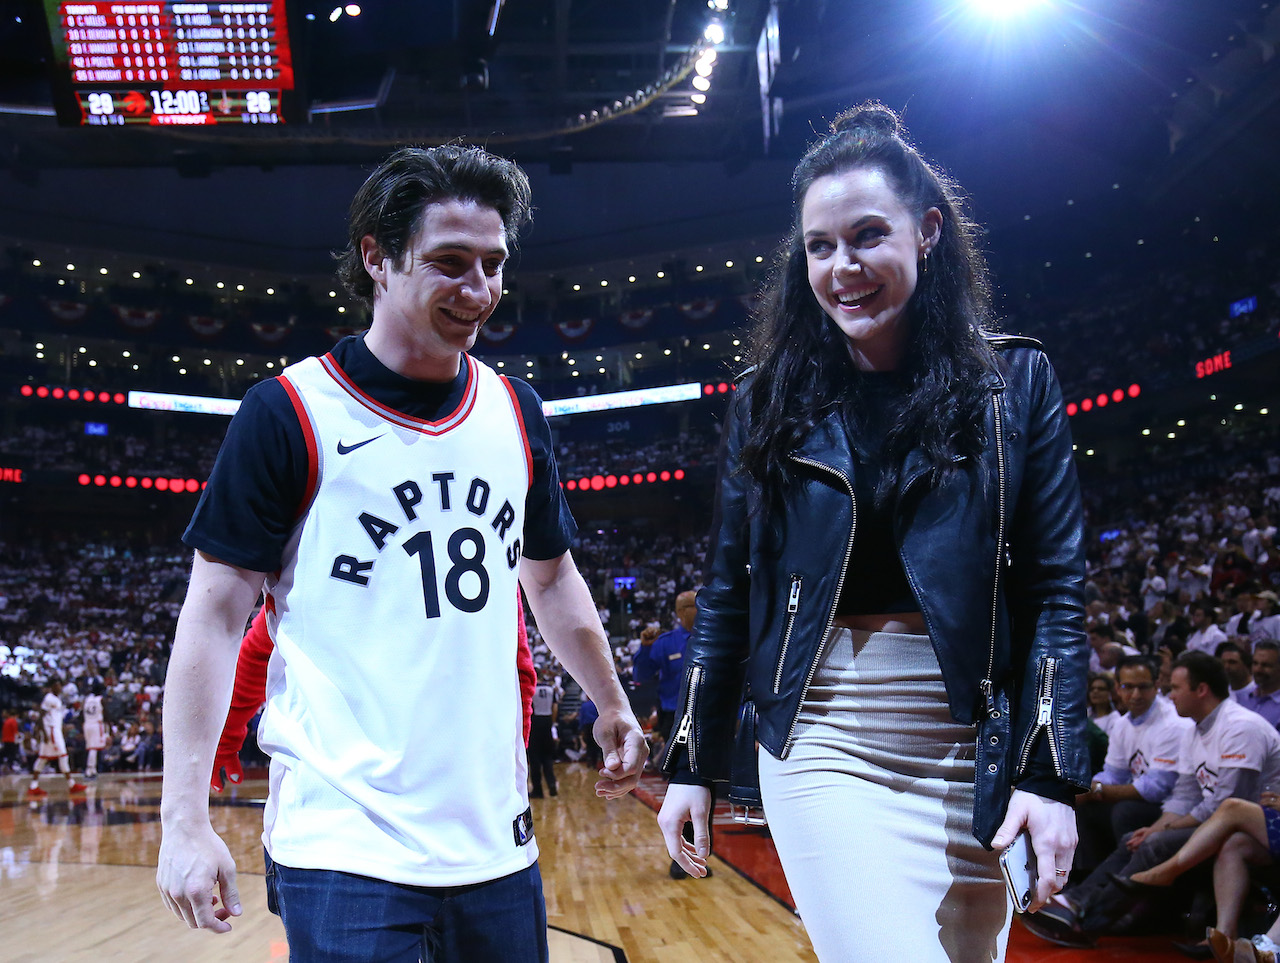 Tessa Virtue Scott Moir - the two stand on the raptors court in Toronto